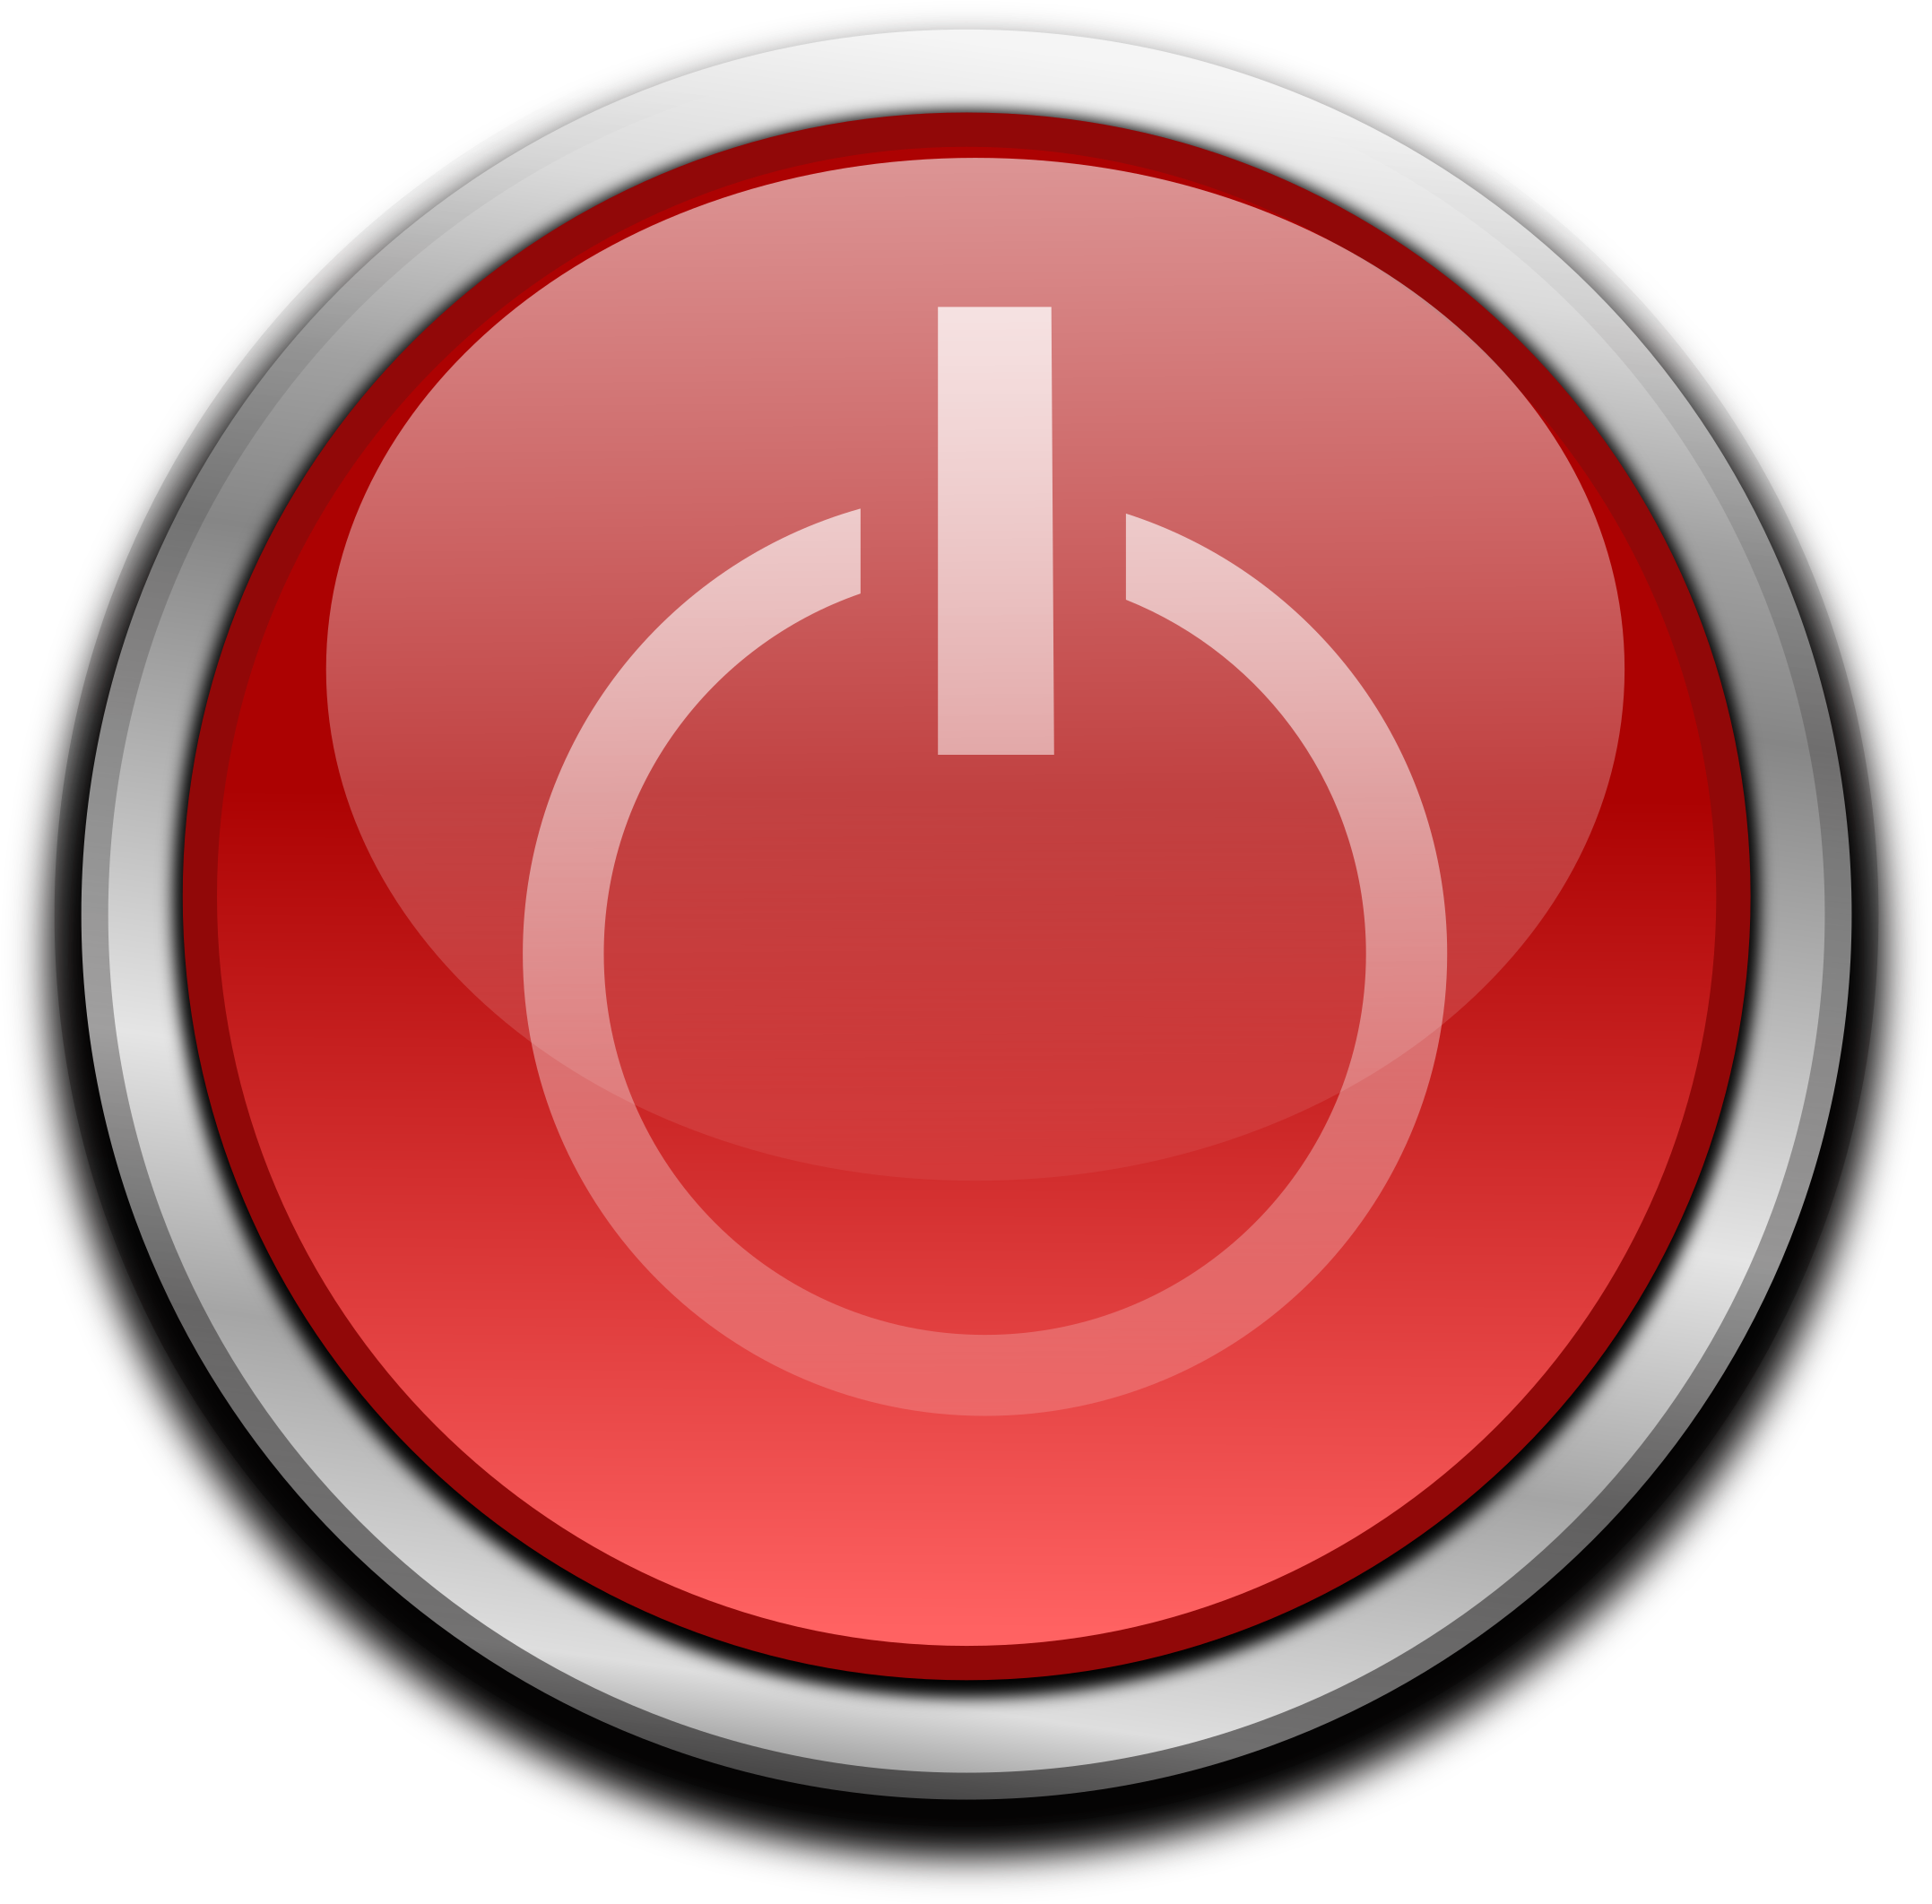 This Free Icons Png Design Of Power Button Full Size PNG Dow